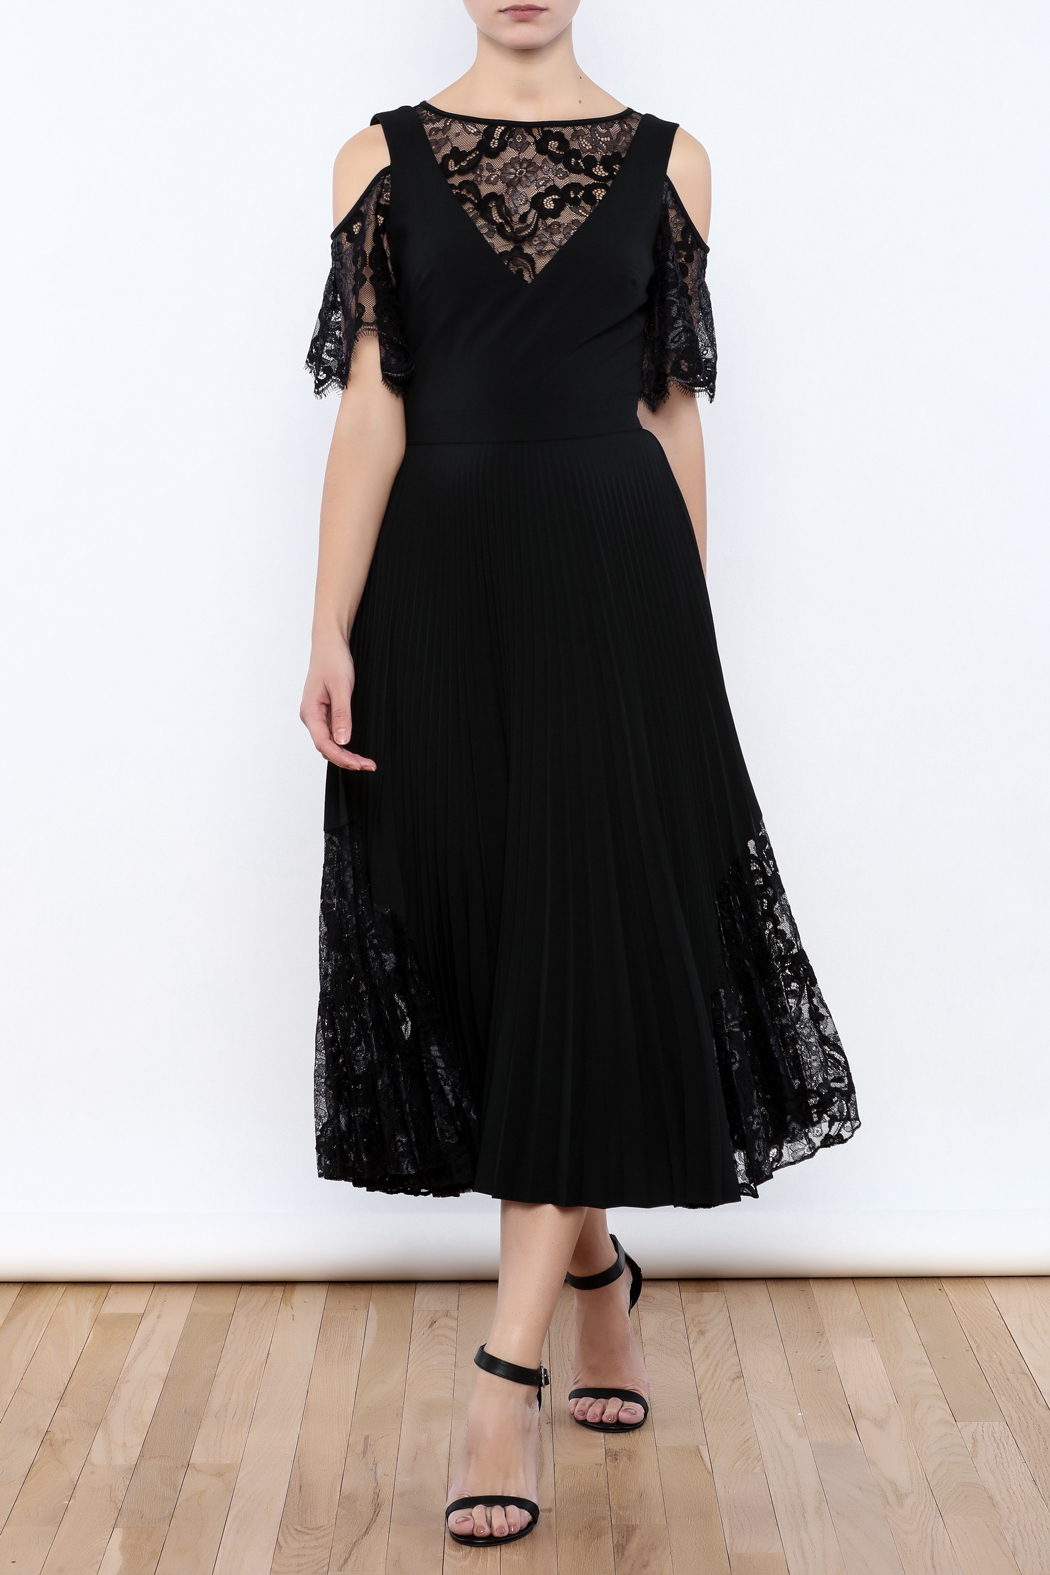 Nicole Miller Black Illusion Dress from Wallingford by The Dressing ...